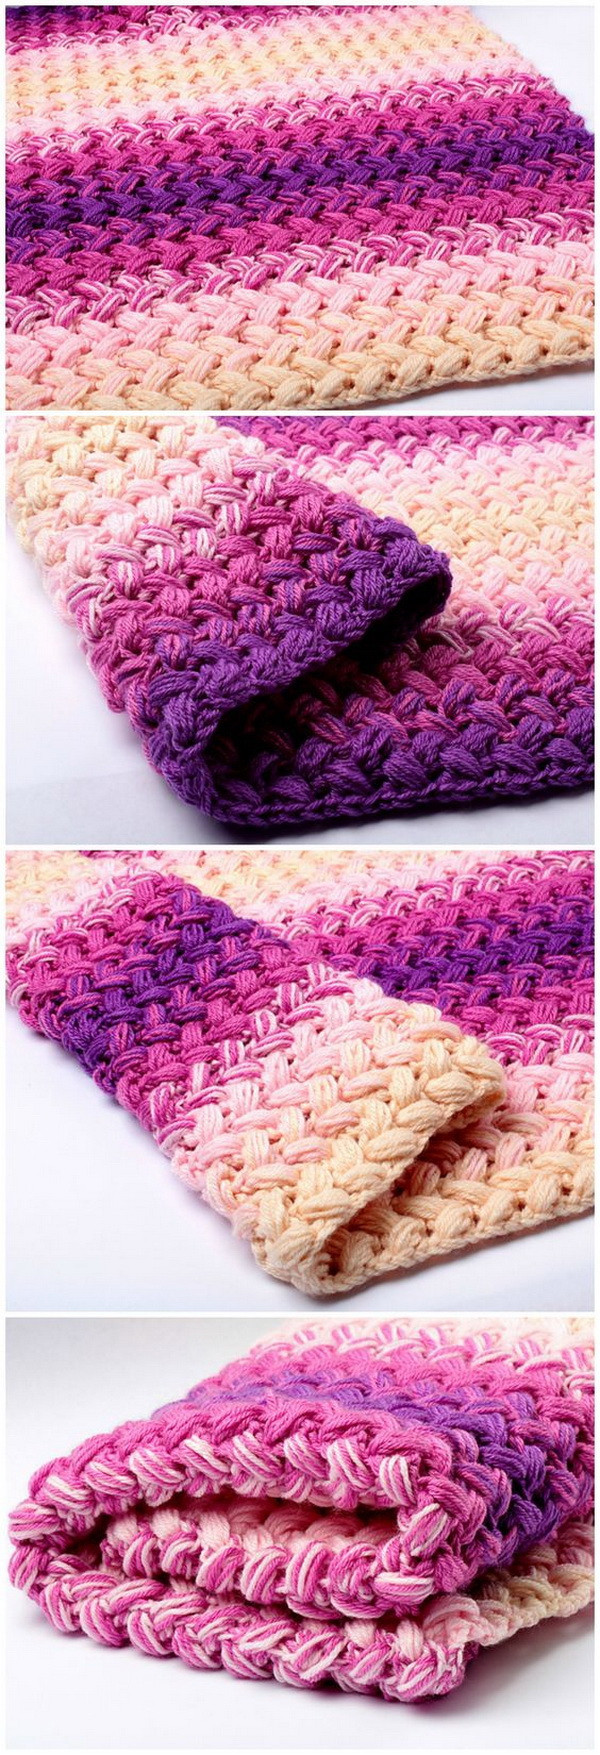 Unique 45 Quick and Easy Crochet Blanket Patterns for Beginners Quick and Easy Crochet Patterns for Beginners Of Awesome 48 Photos Quick and Easy Crochet Patterns for Beginners